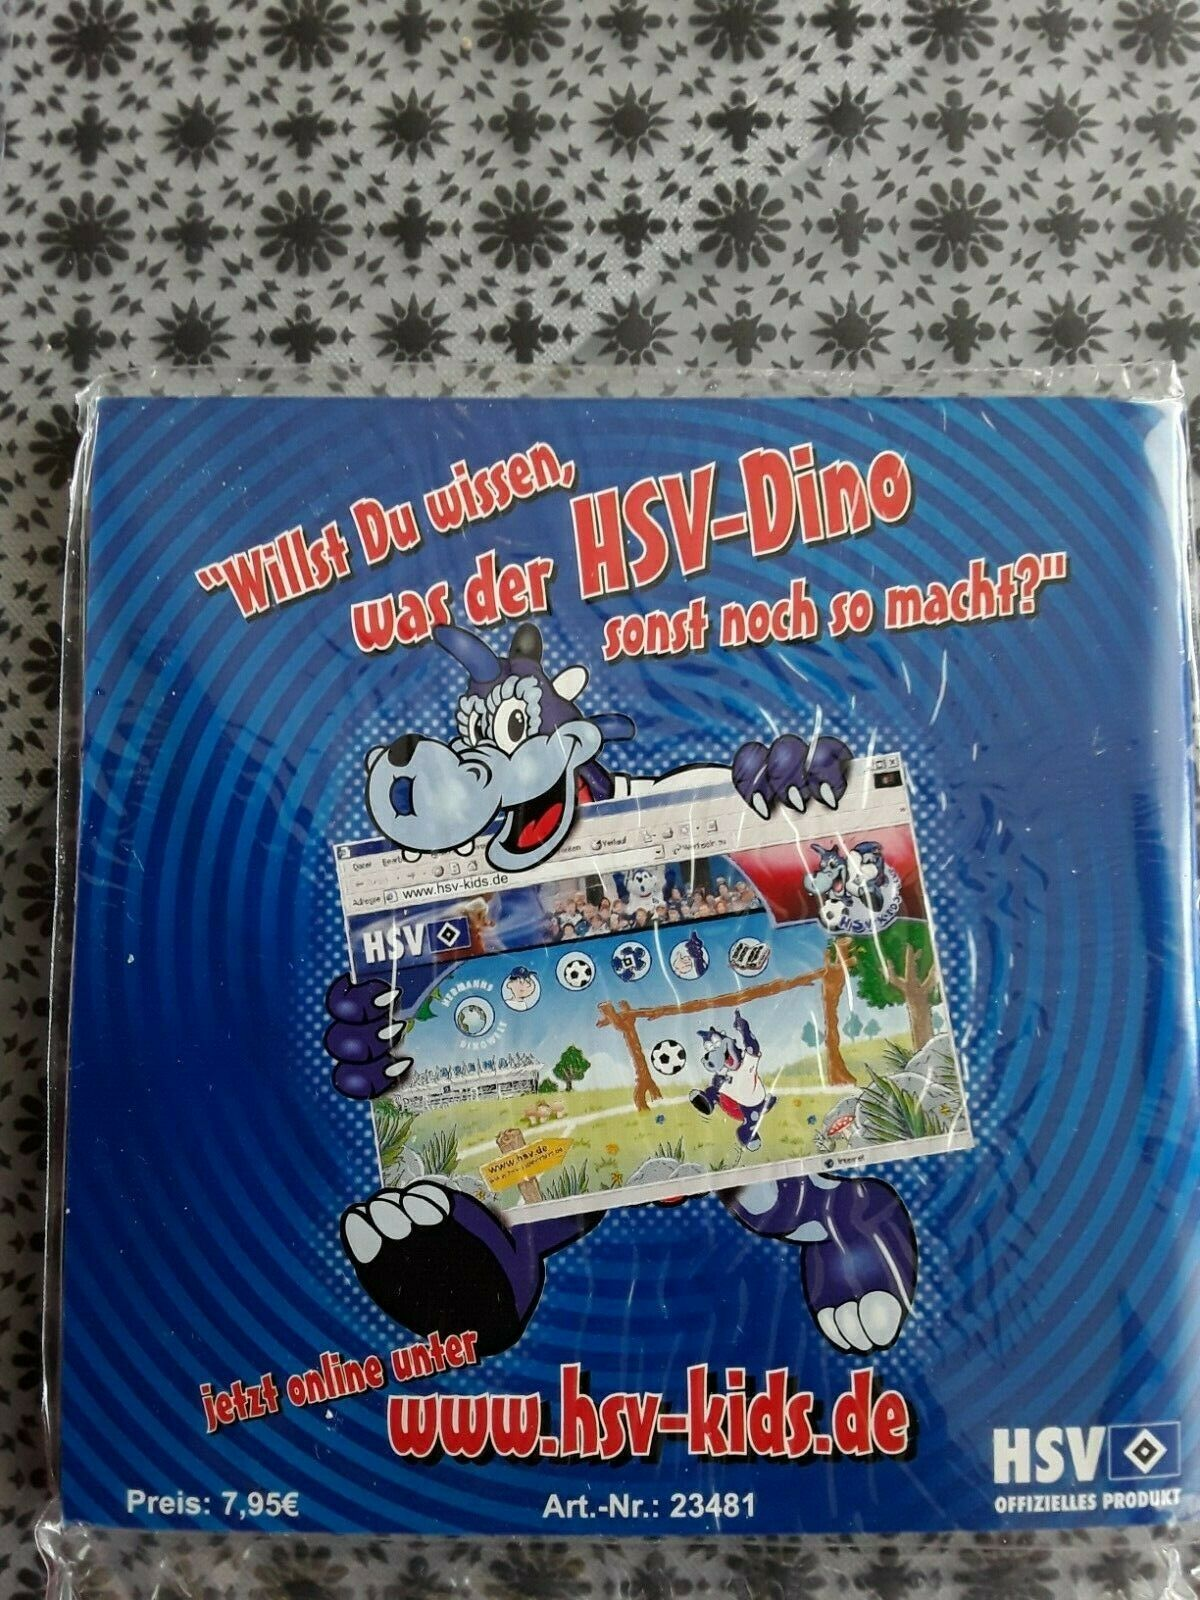 Hsv Kids Club Dino Hermann In Der Aol Arena Booklet Und Dino Cd Ovp Ebay